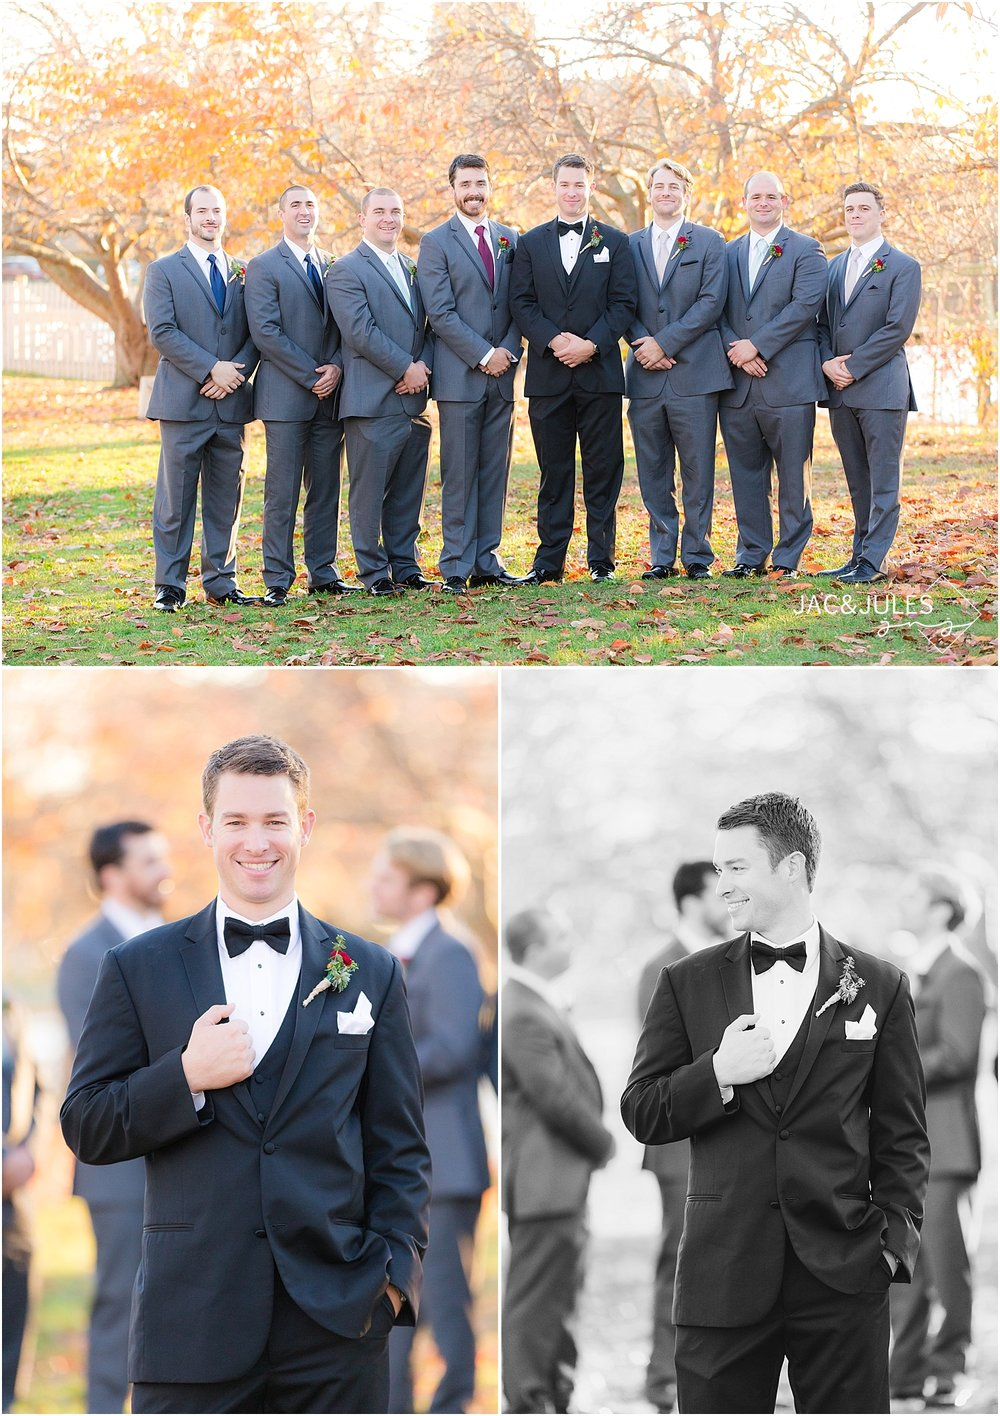 jacnjules photograph fall wedding at Divine Park in Spring Lake, NJ